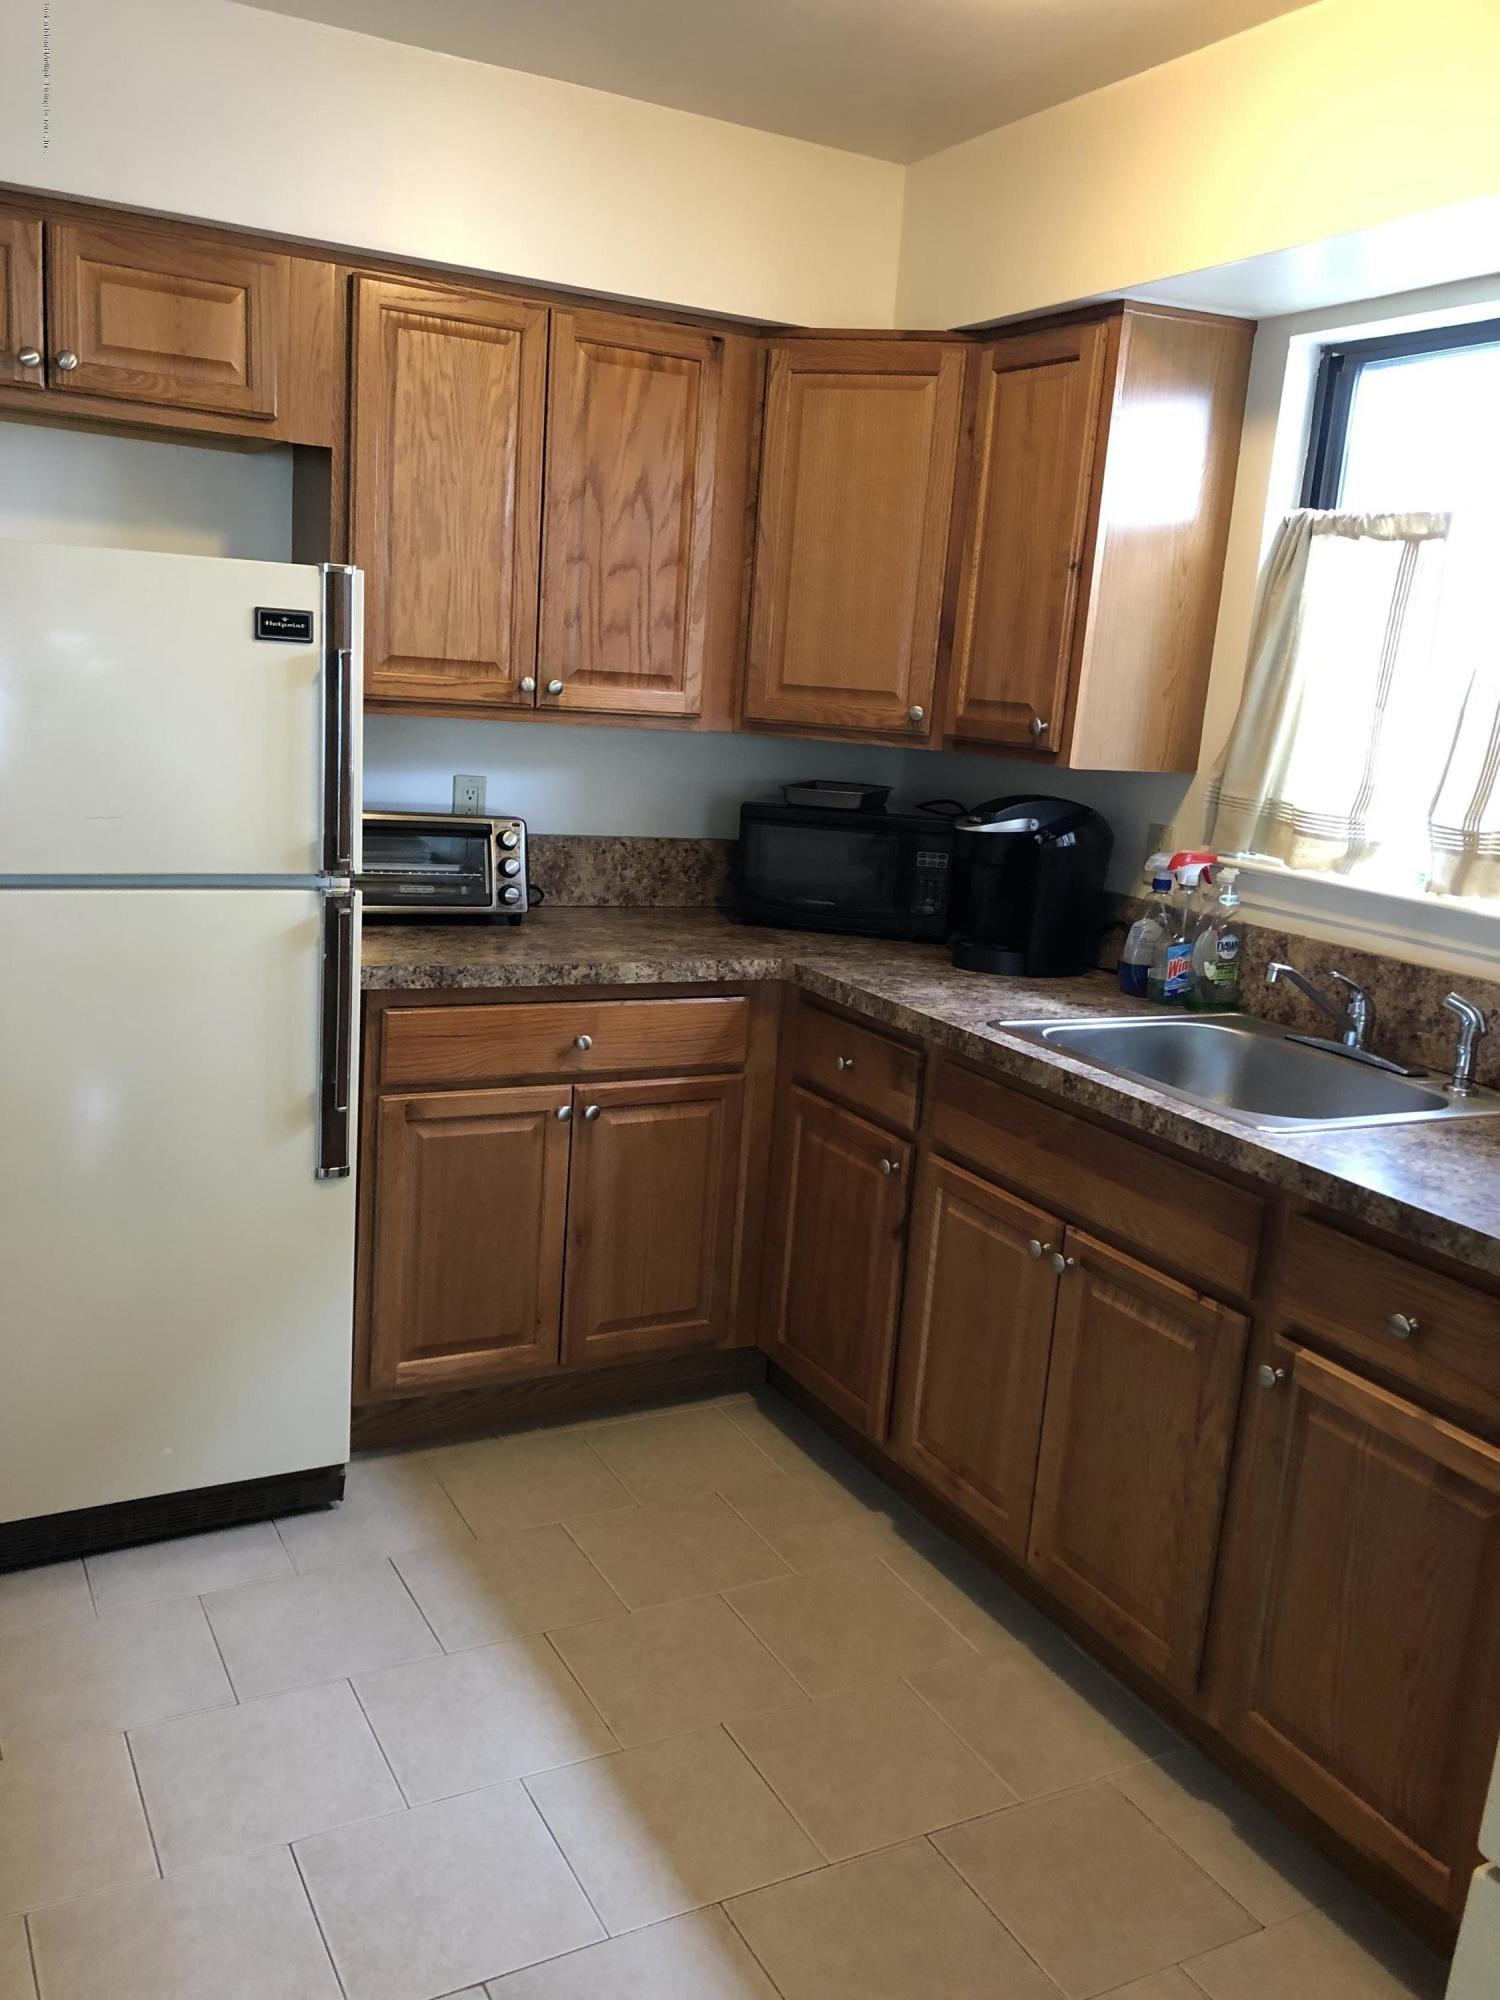 275 Eltingville Boulevard,Staten Island,New York,10312,United States,1 Bedroom Bedrooms,3 Rooms Rooms,1 BathroomBathrooms,Res-Rental,Eltingville,1128155